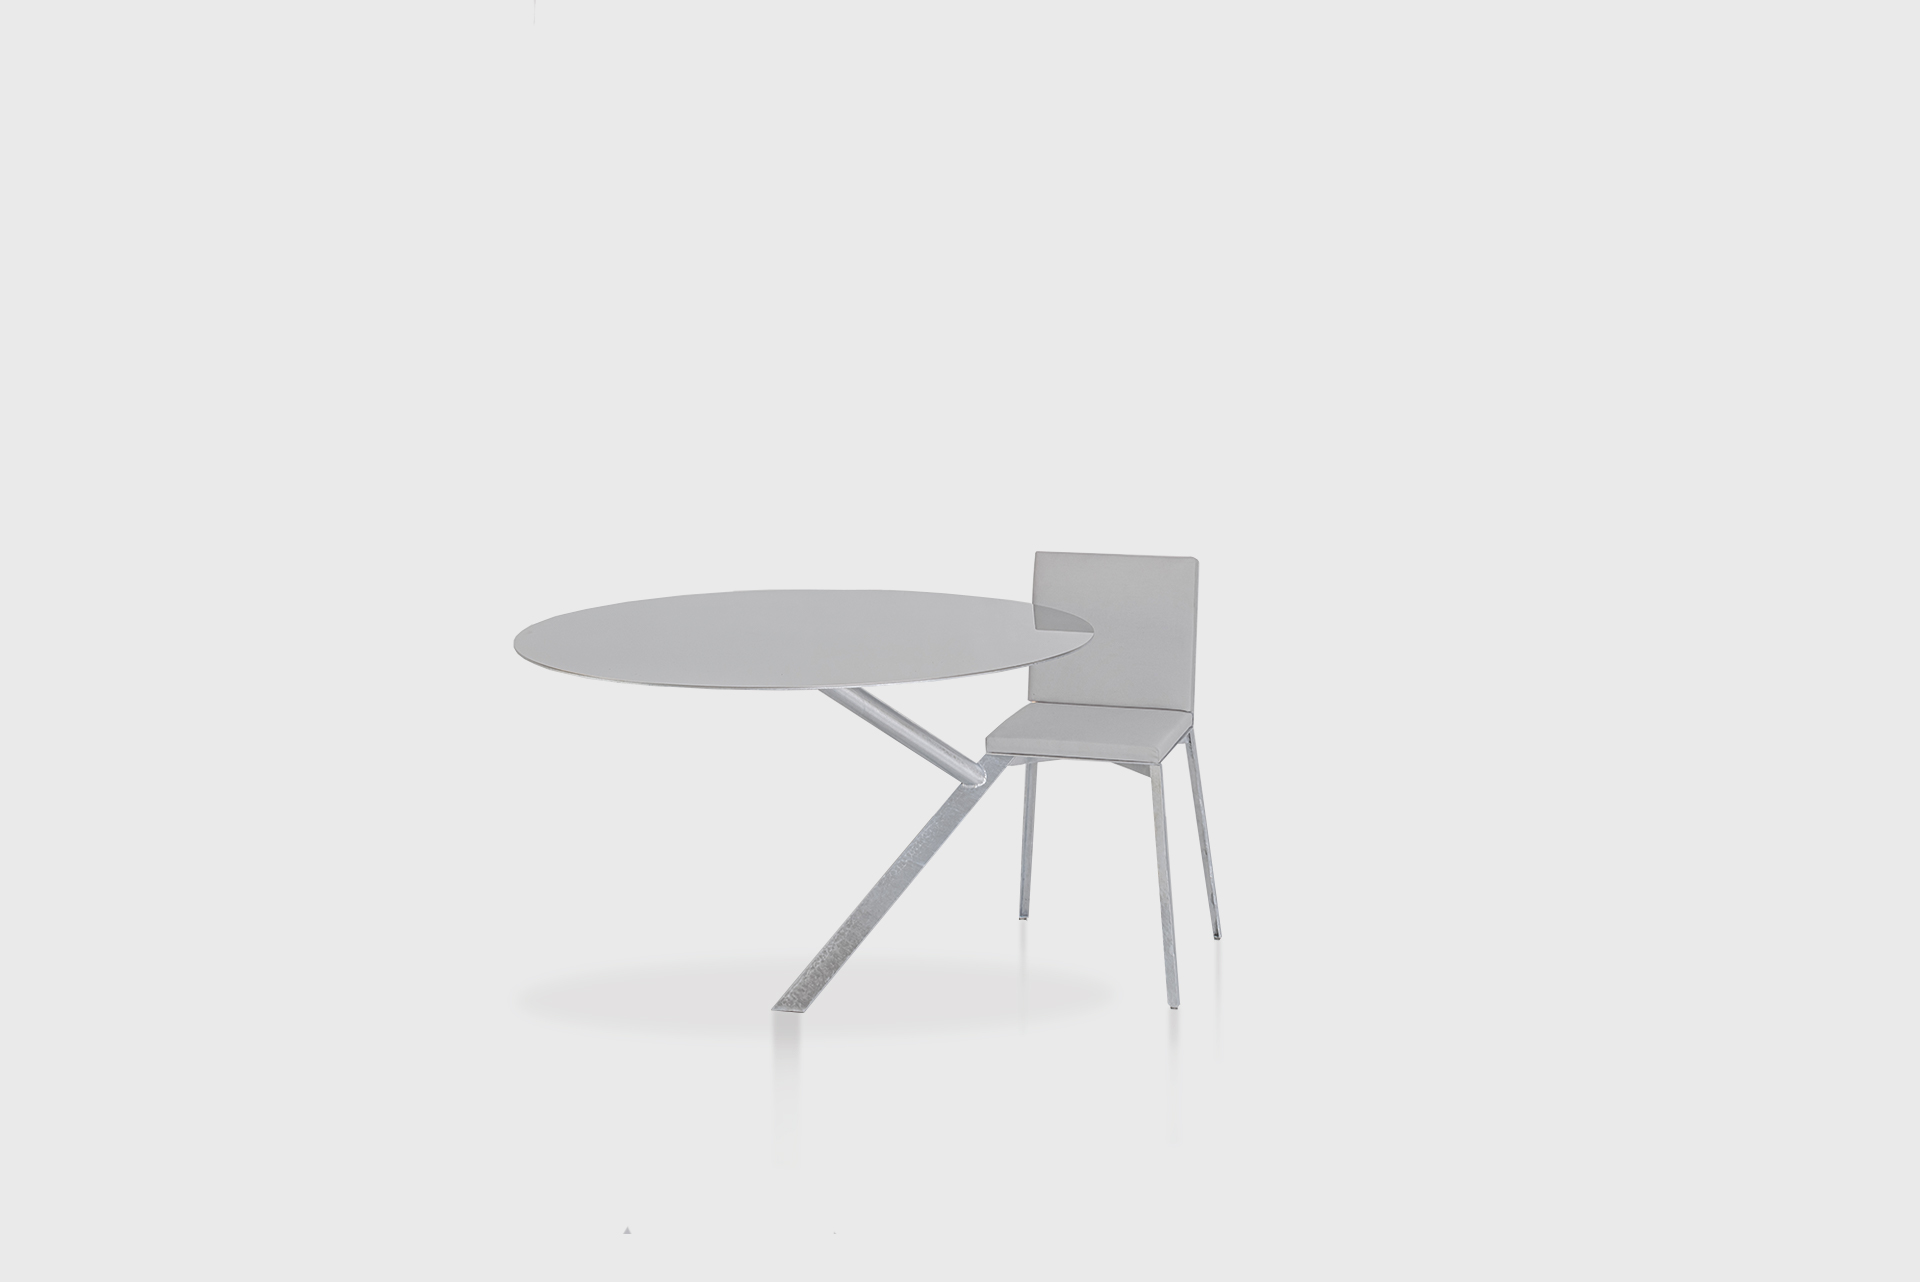 """Chair With Table Attached From the series """"Beasts"""" Produced in exclusive for SIDE GALLERY Manufactured by ERTL und ZULL Berlin, 2021 Galvanized steel, mirror, upholstery"""